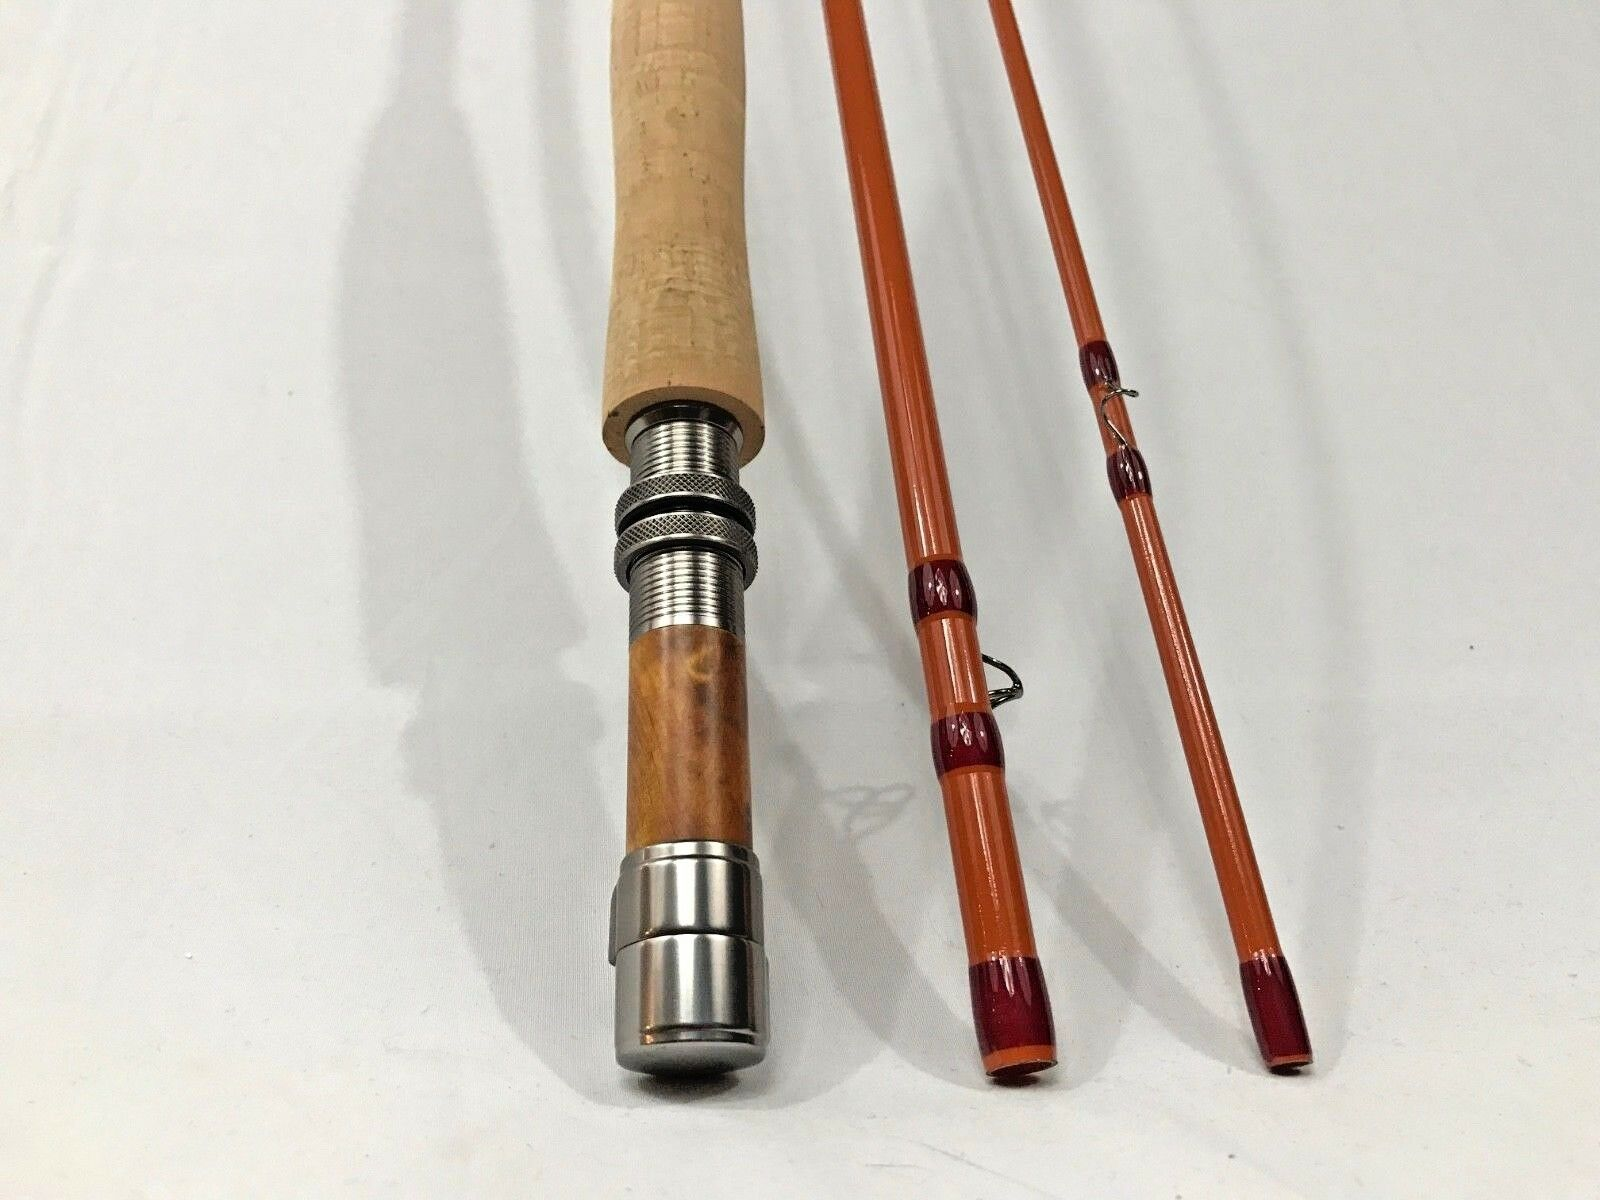 Fly Fishing Rod 3 Wt Glass - New -Trout Fisherman Gift USA Opening Day